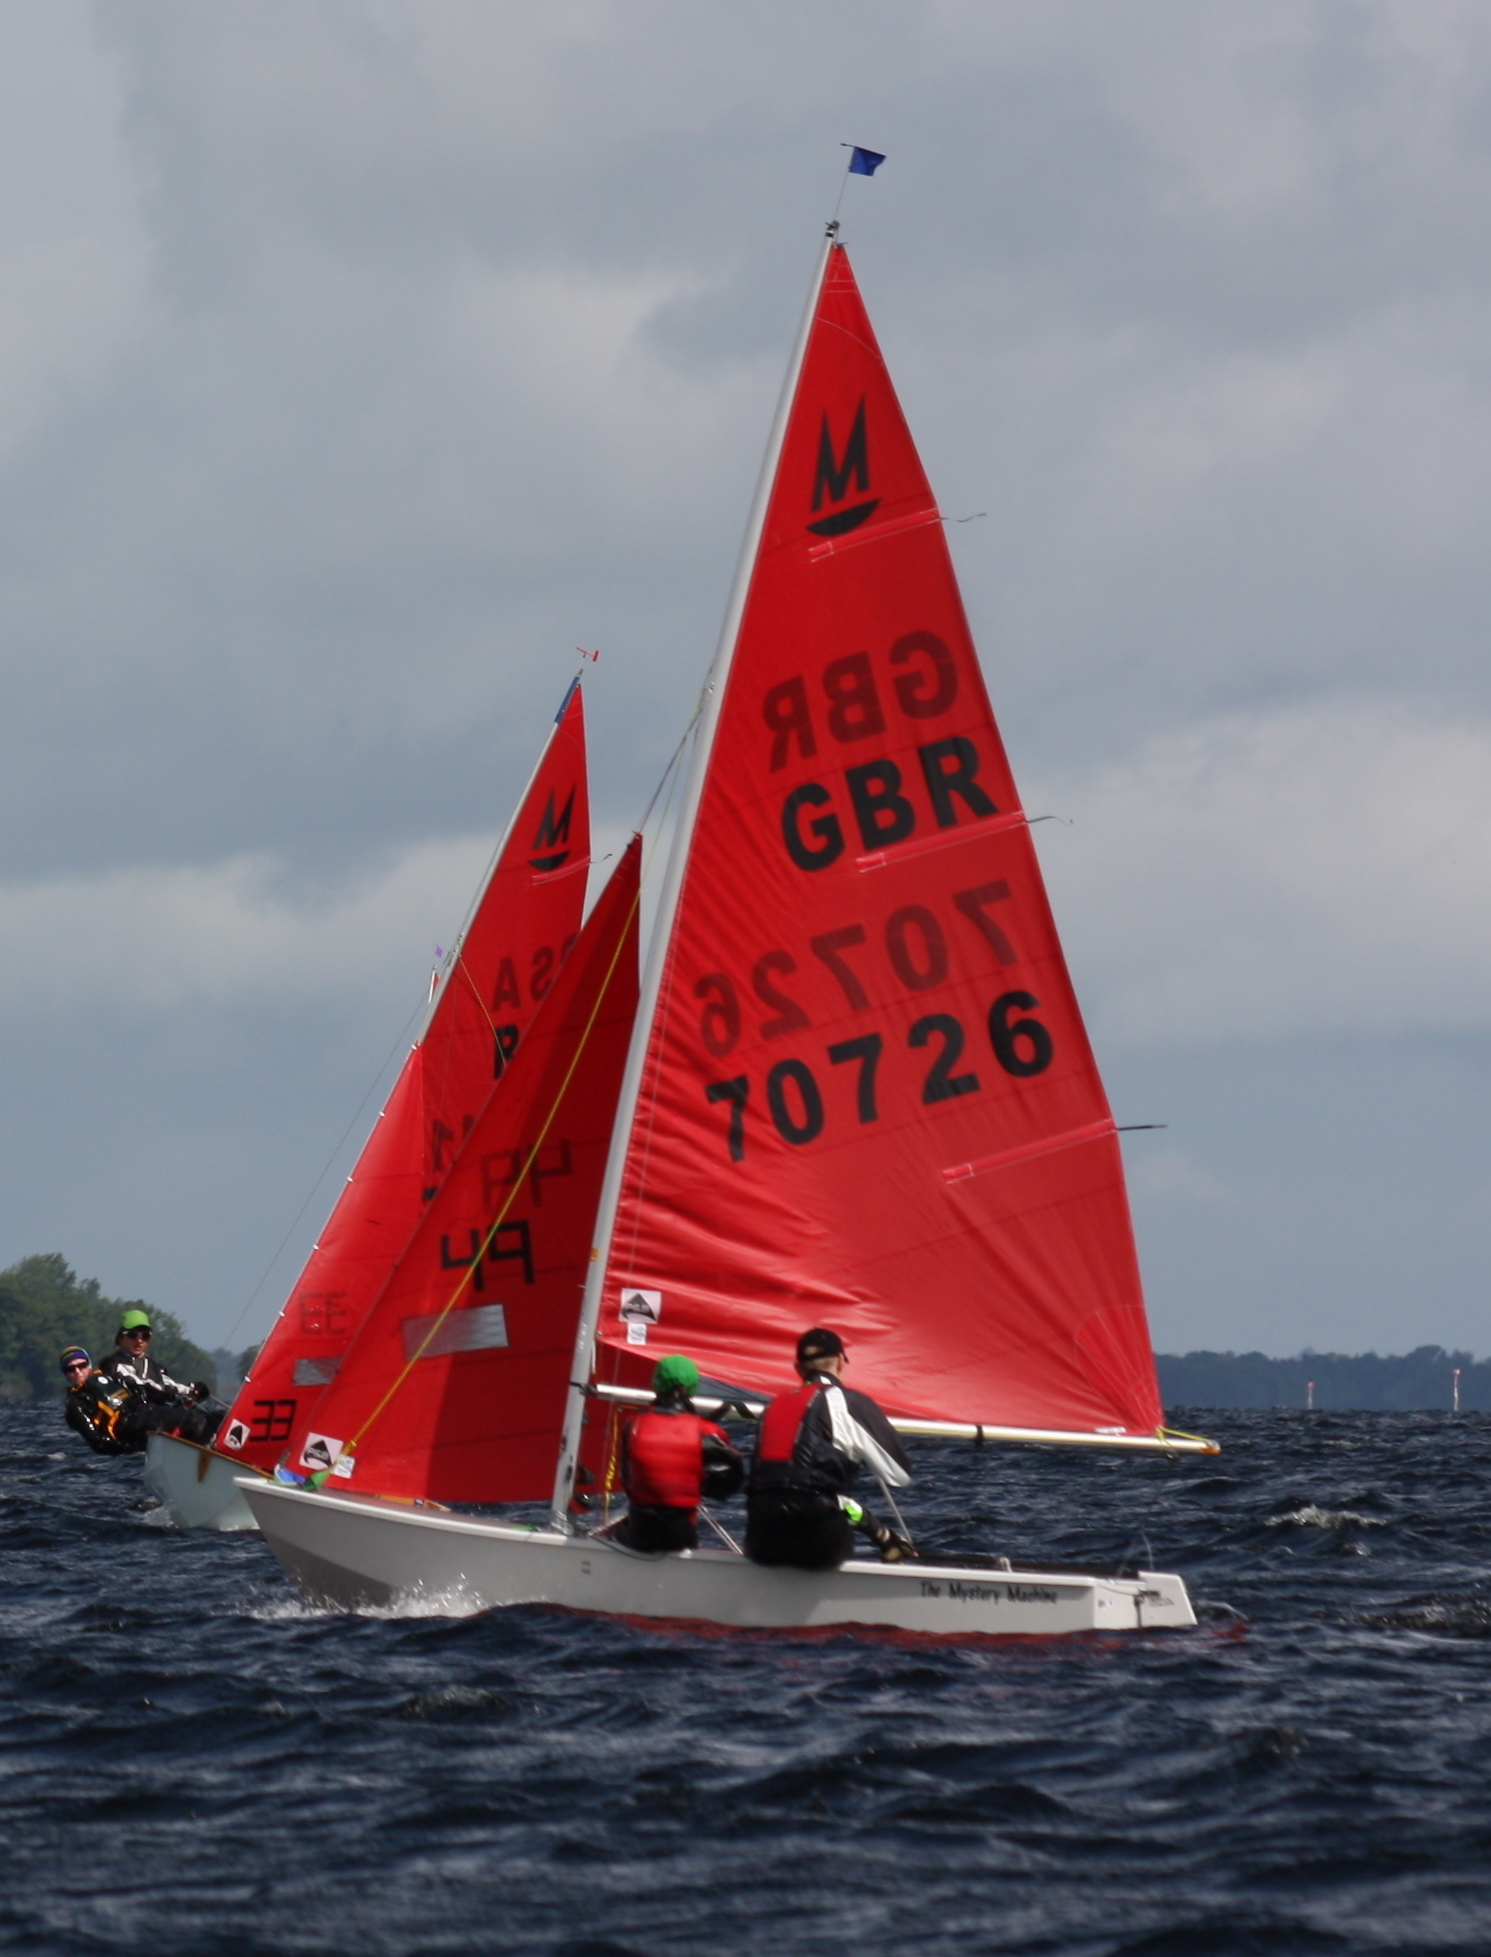 White Mirror dinghy on port about to tack to avoid a Mirror on starboard tack